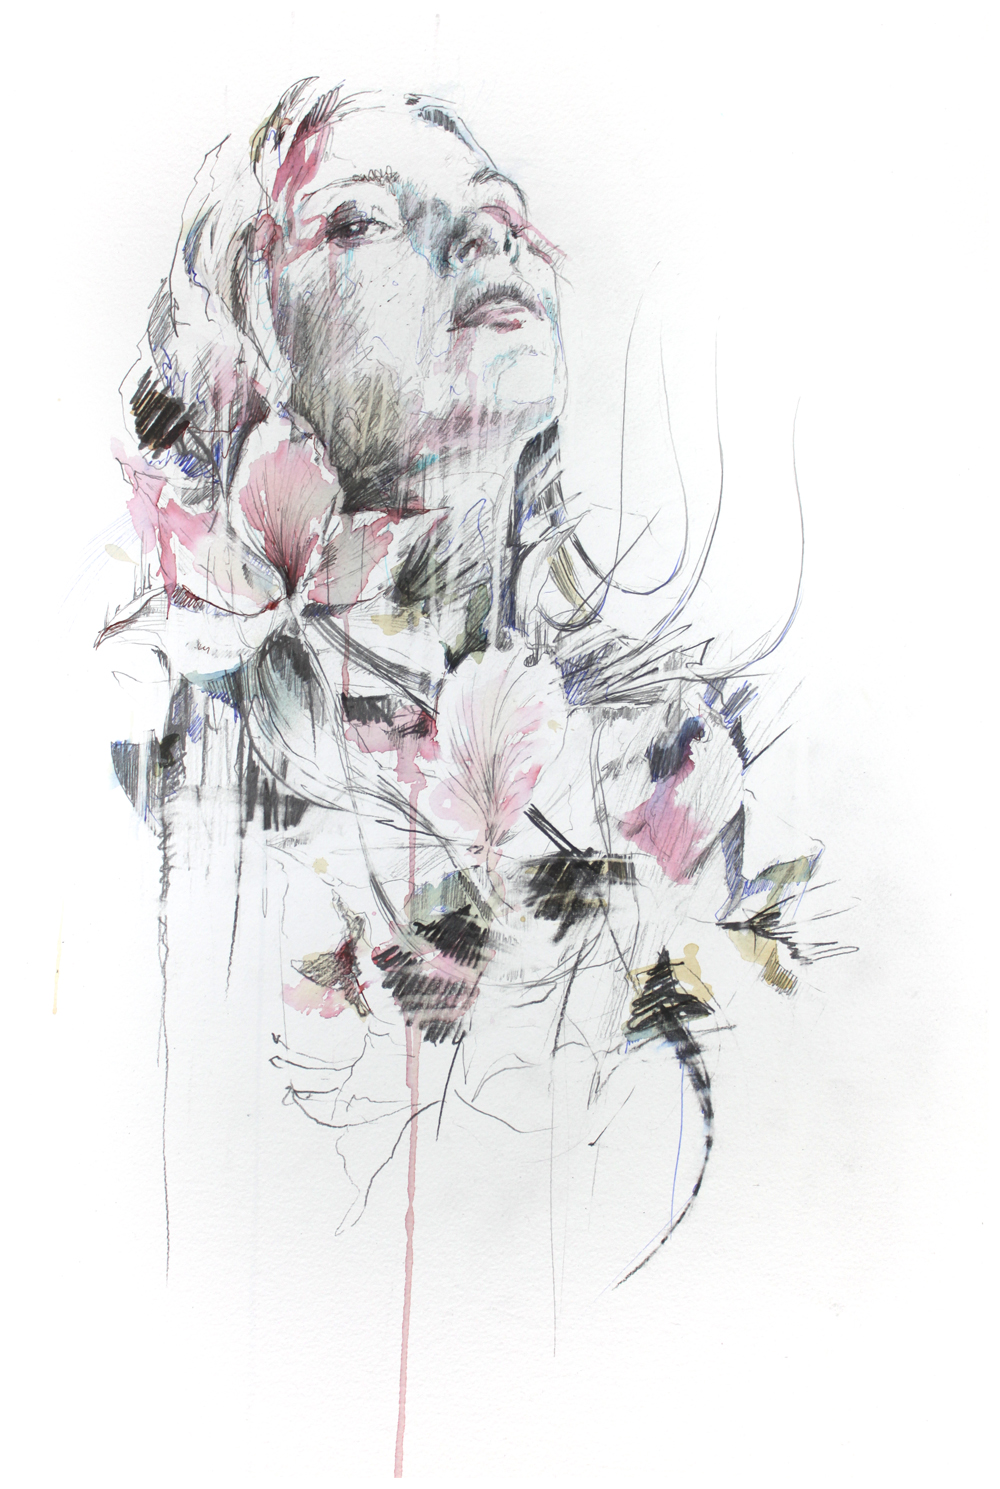 White Noise by Carne Griffiths